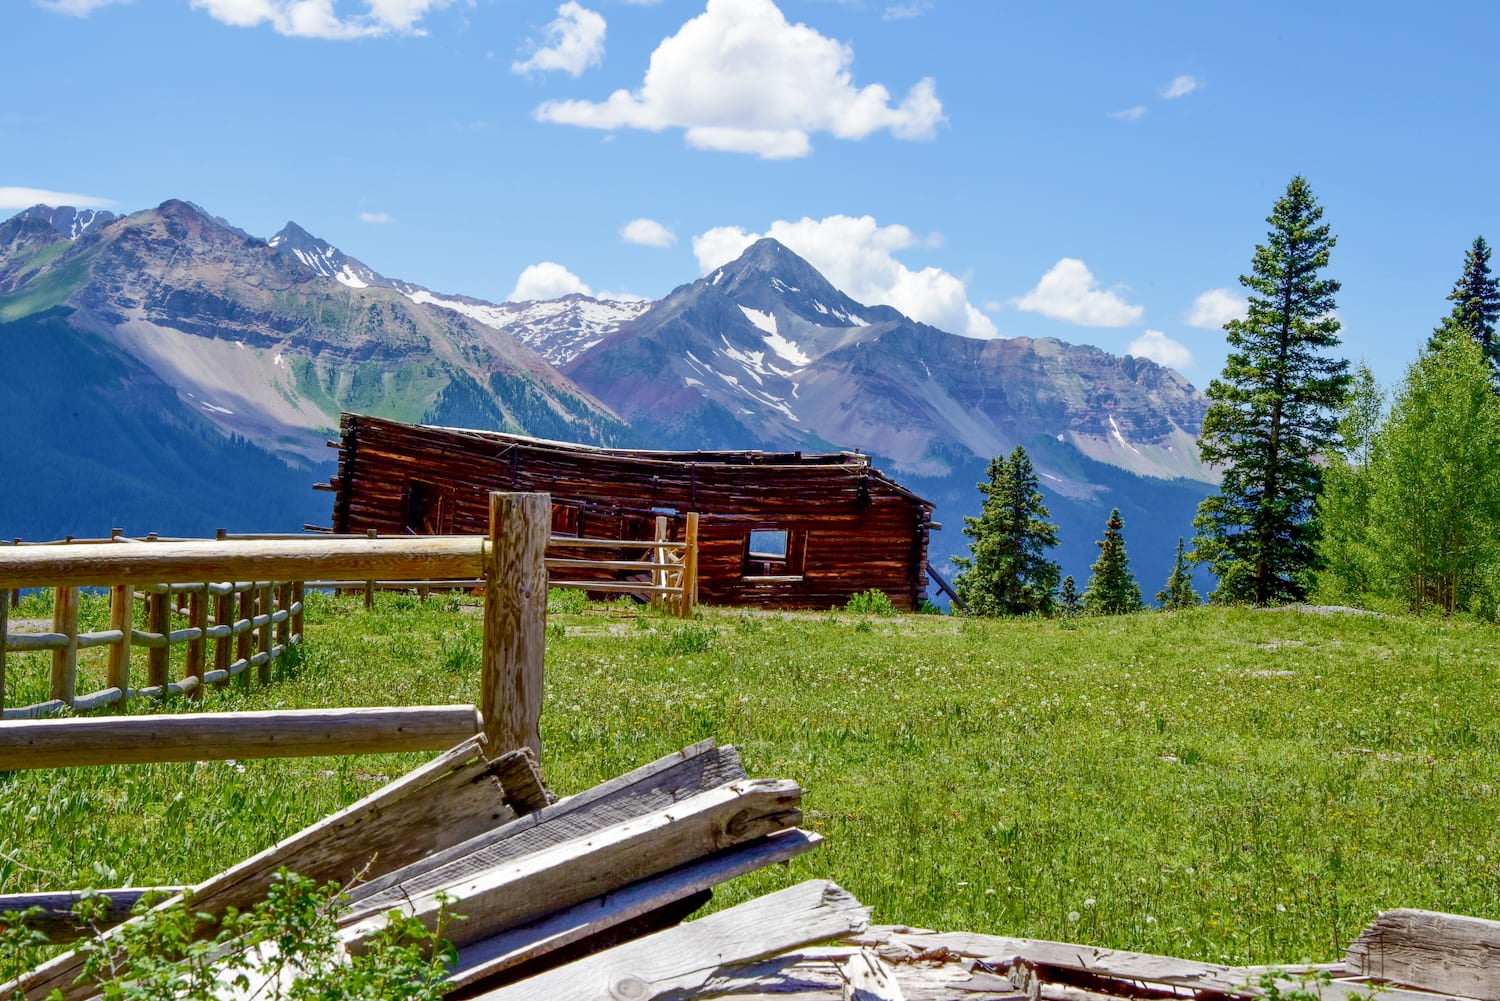 green grass, wood fence, abandoned cabin and mountain peaks in the background